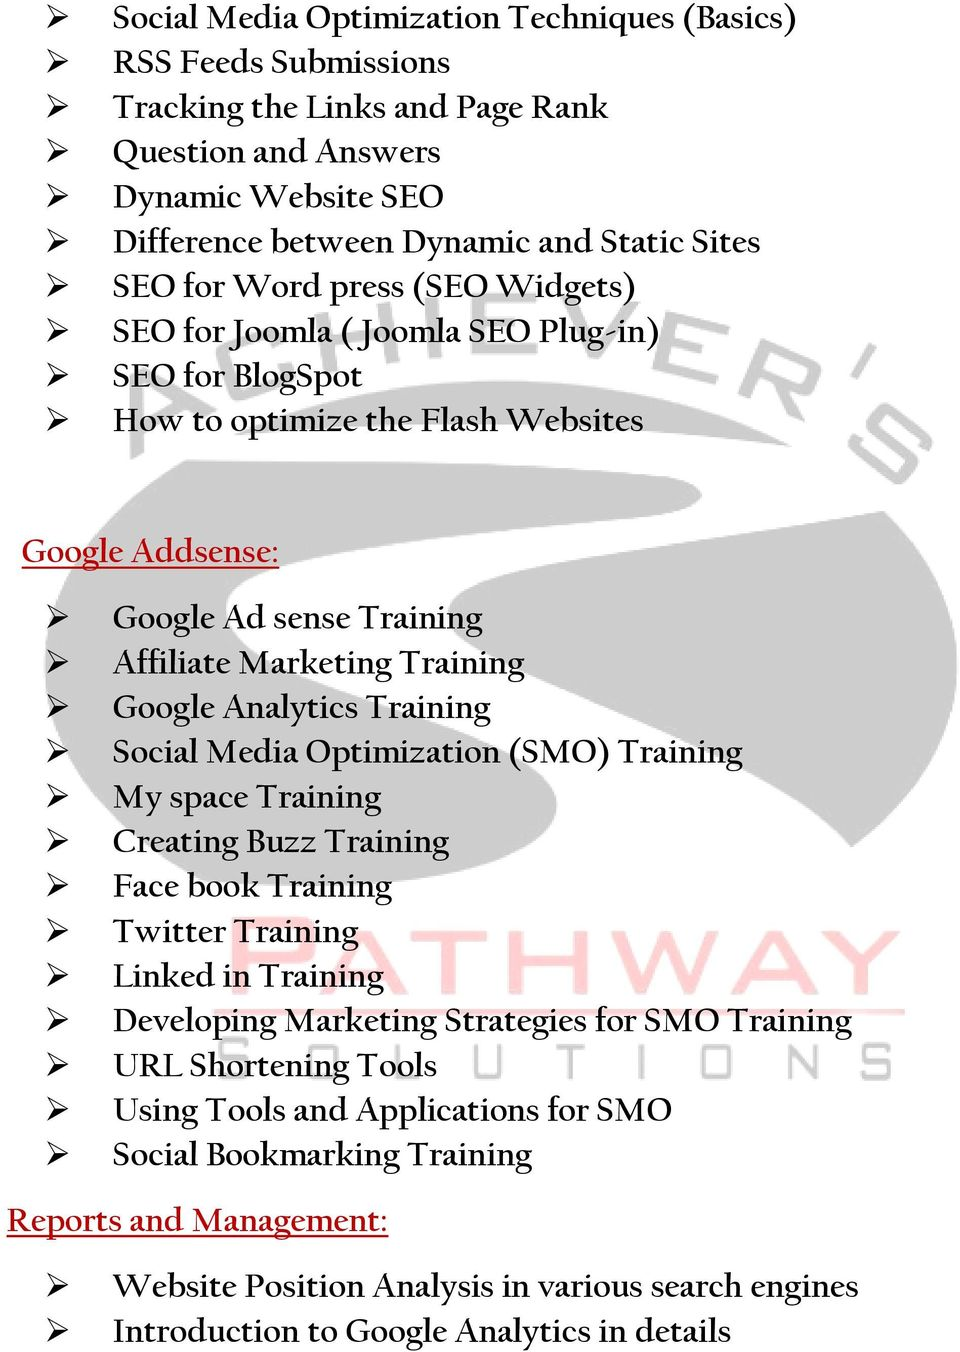 Training Social Media Optimization (SMO) Training My space Training Creating Buzz Training Face book Training Twitter Training Linked in Training Developing Marketing Strategies for SMO Training URL